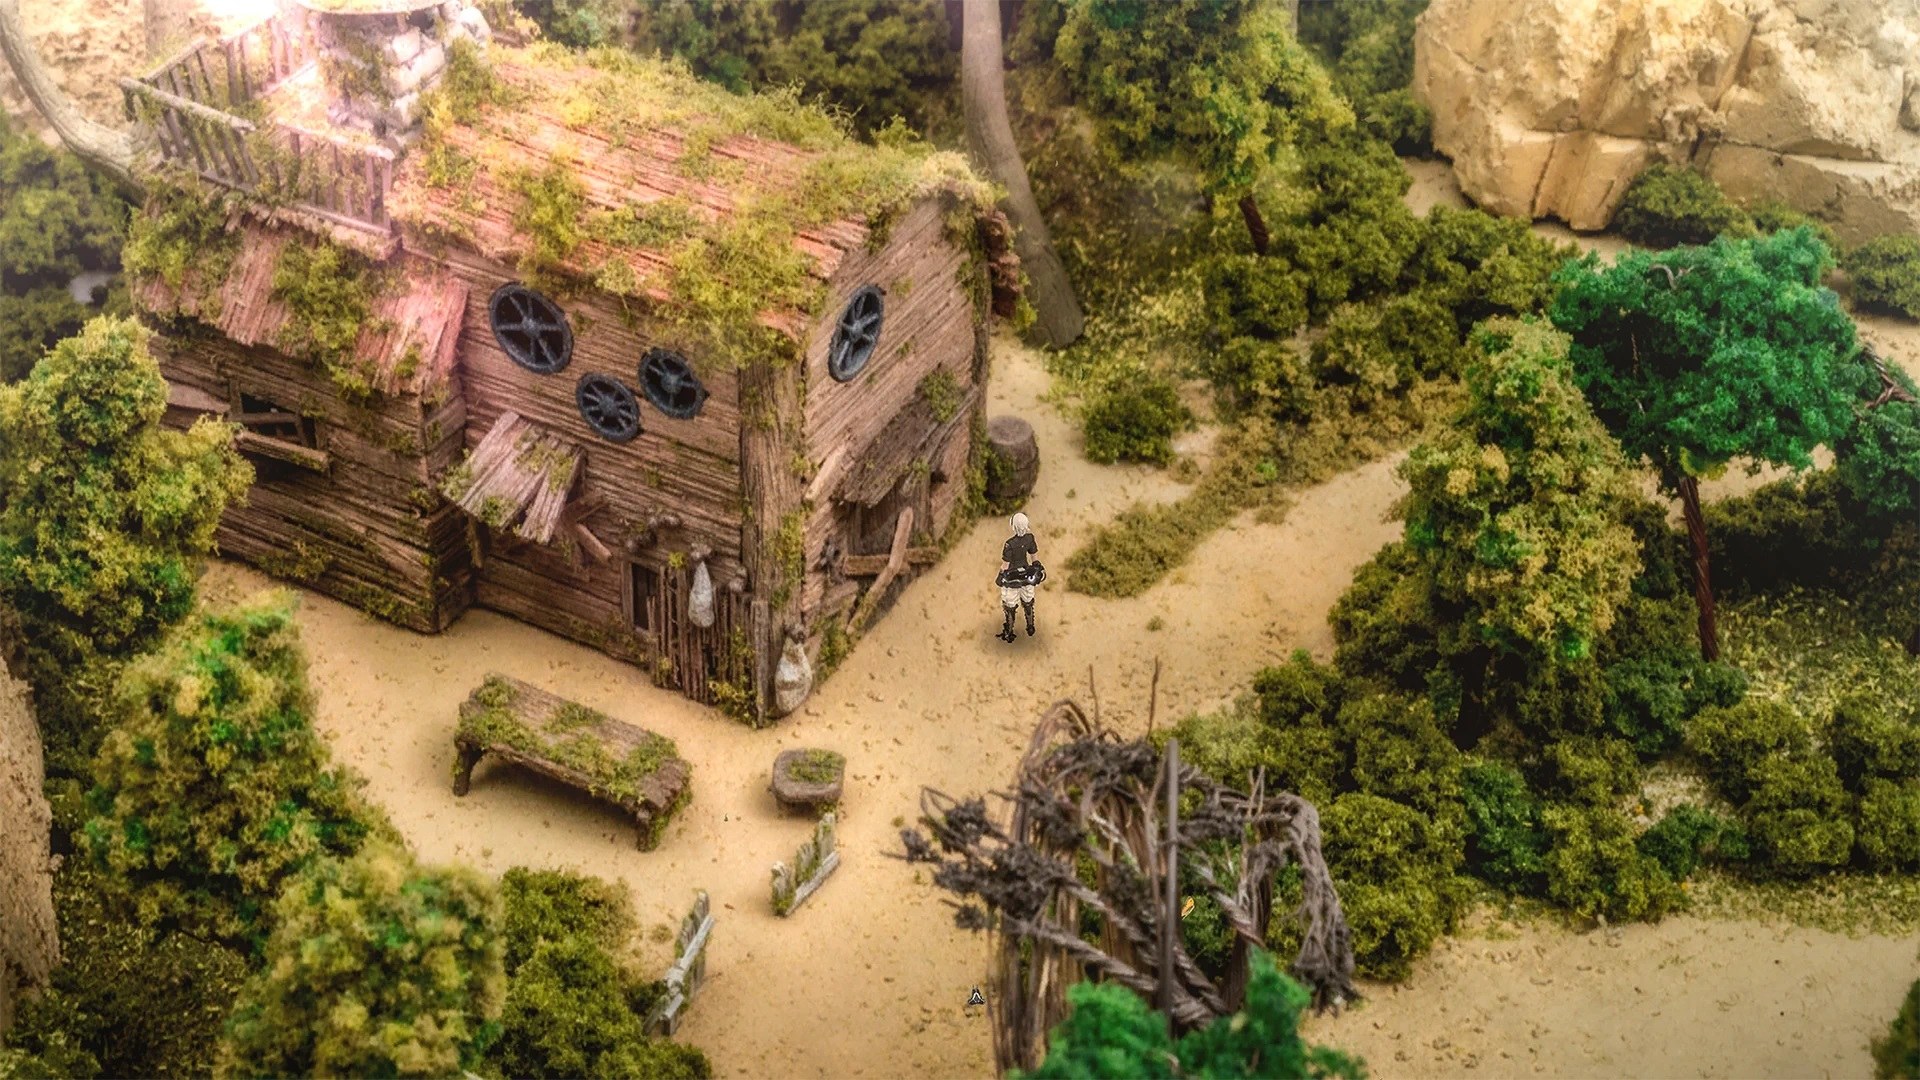 A Forest Home in Fantasian